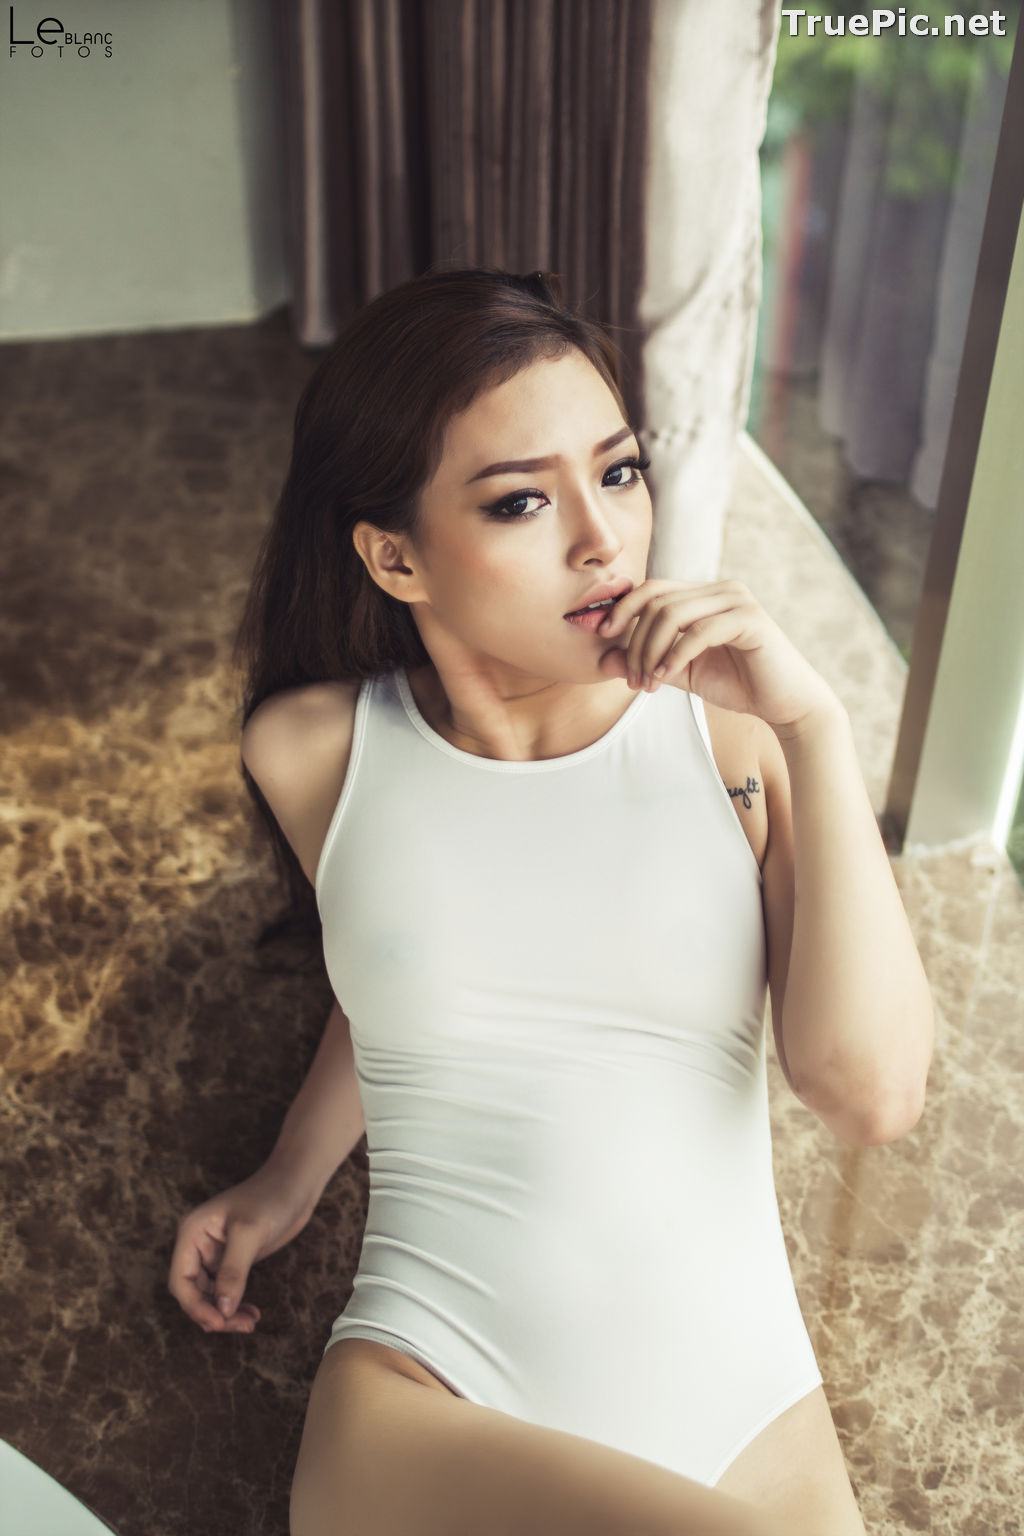 Image Vietnamese Beauties With Lingerie and Bikini – Photo by Le Blanc Studio #14 - TruePic.net - Picture-6